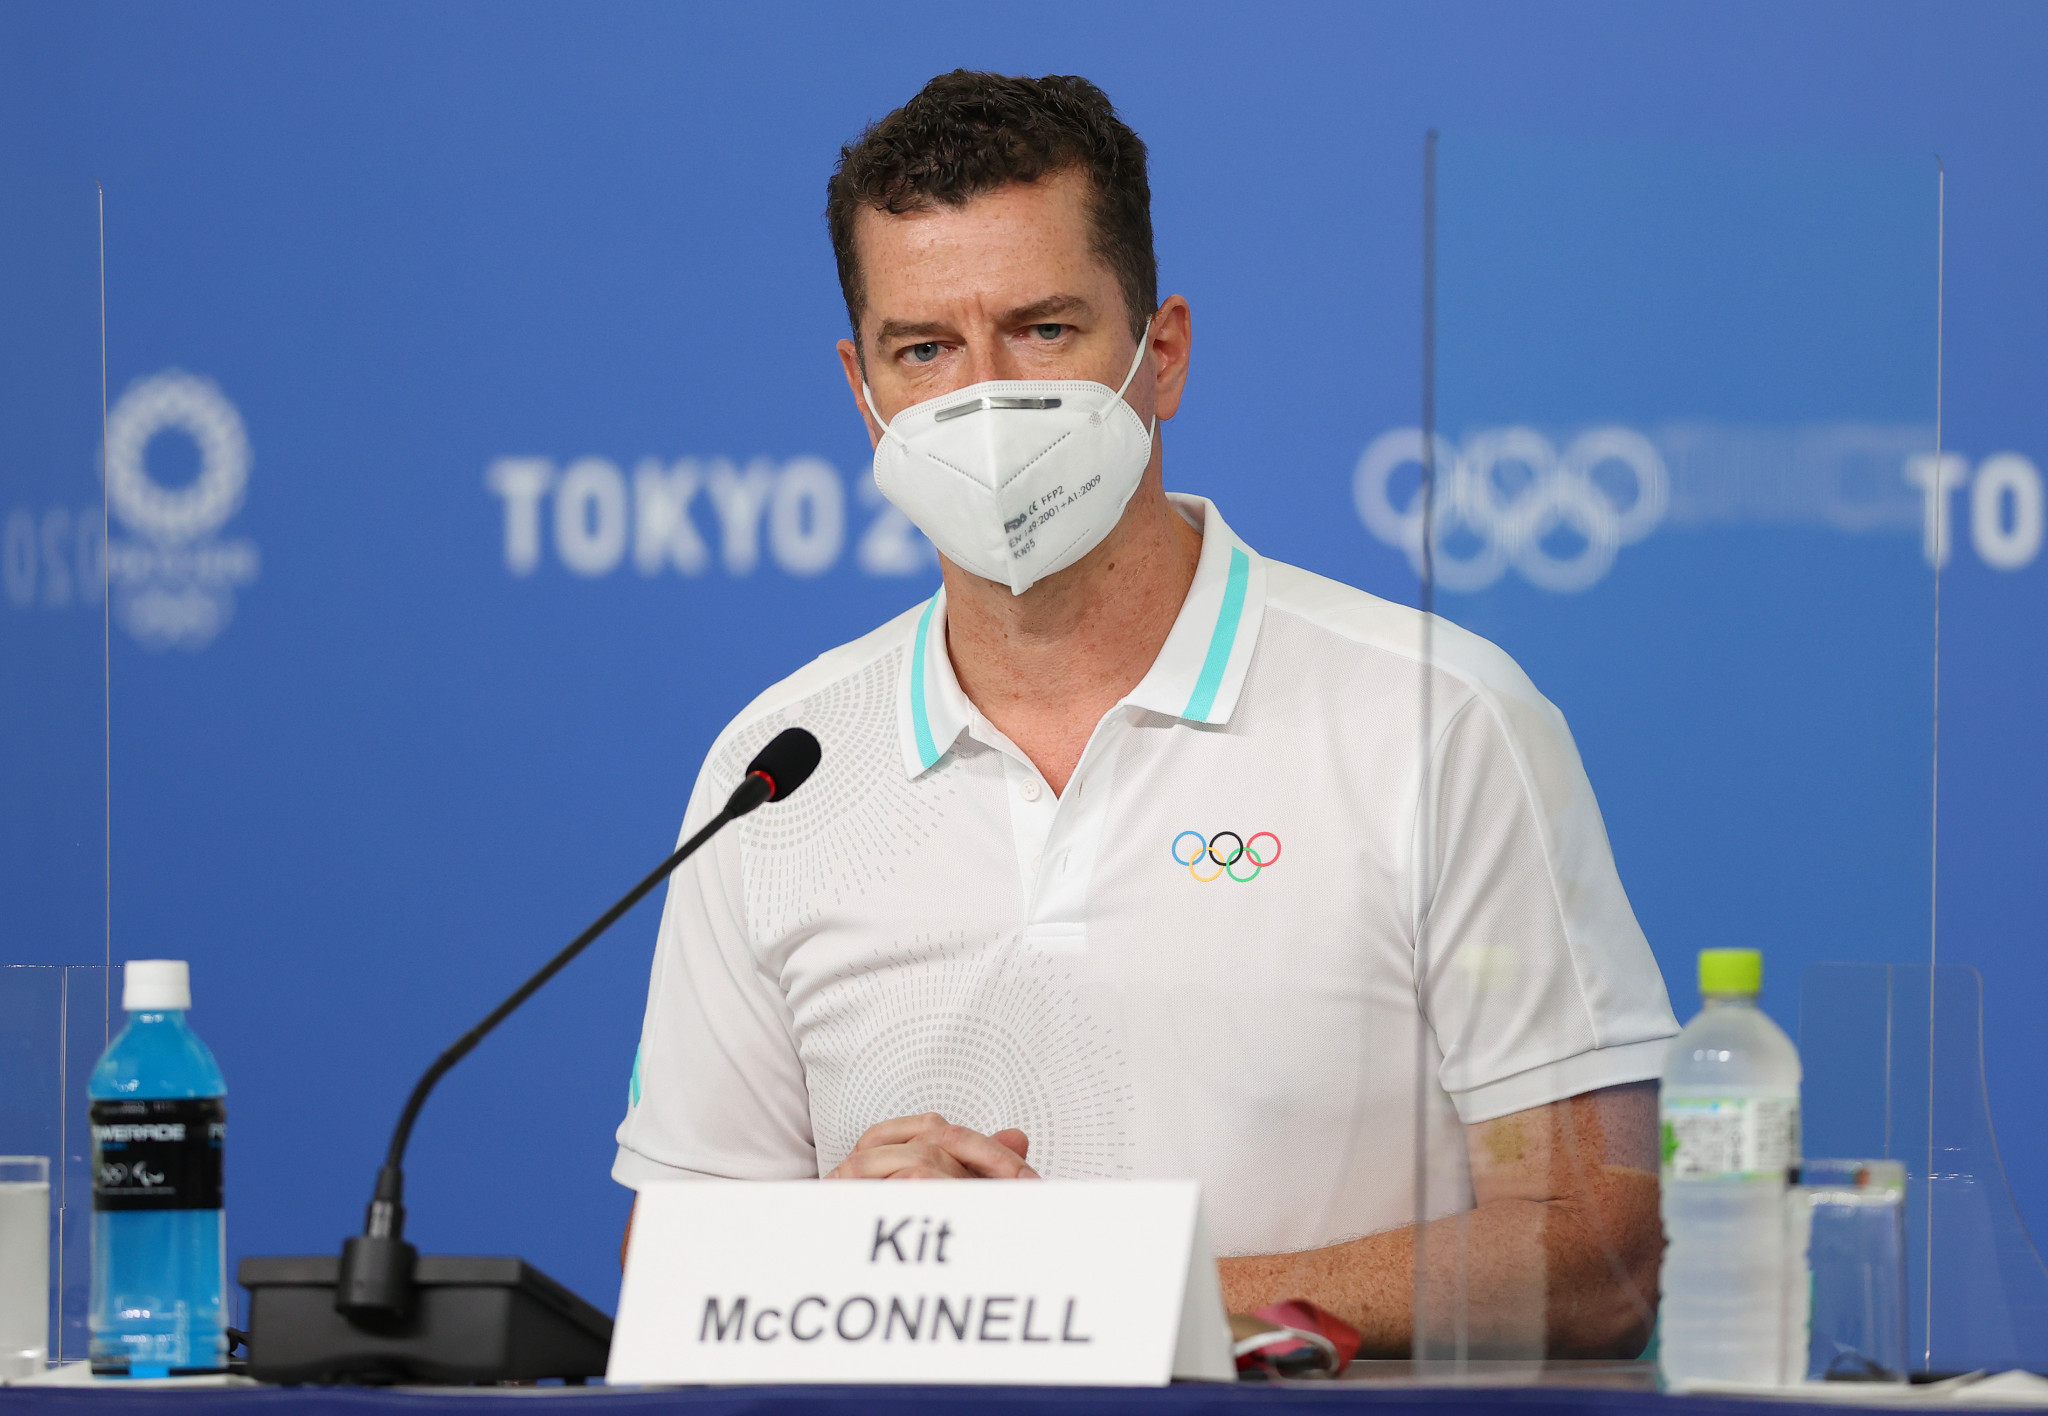 IOC sports director Kit McConnell will speak at the annual Congress ©Getty Images